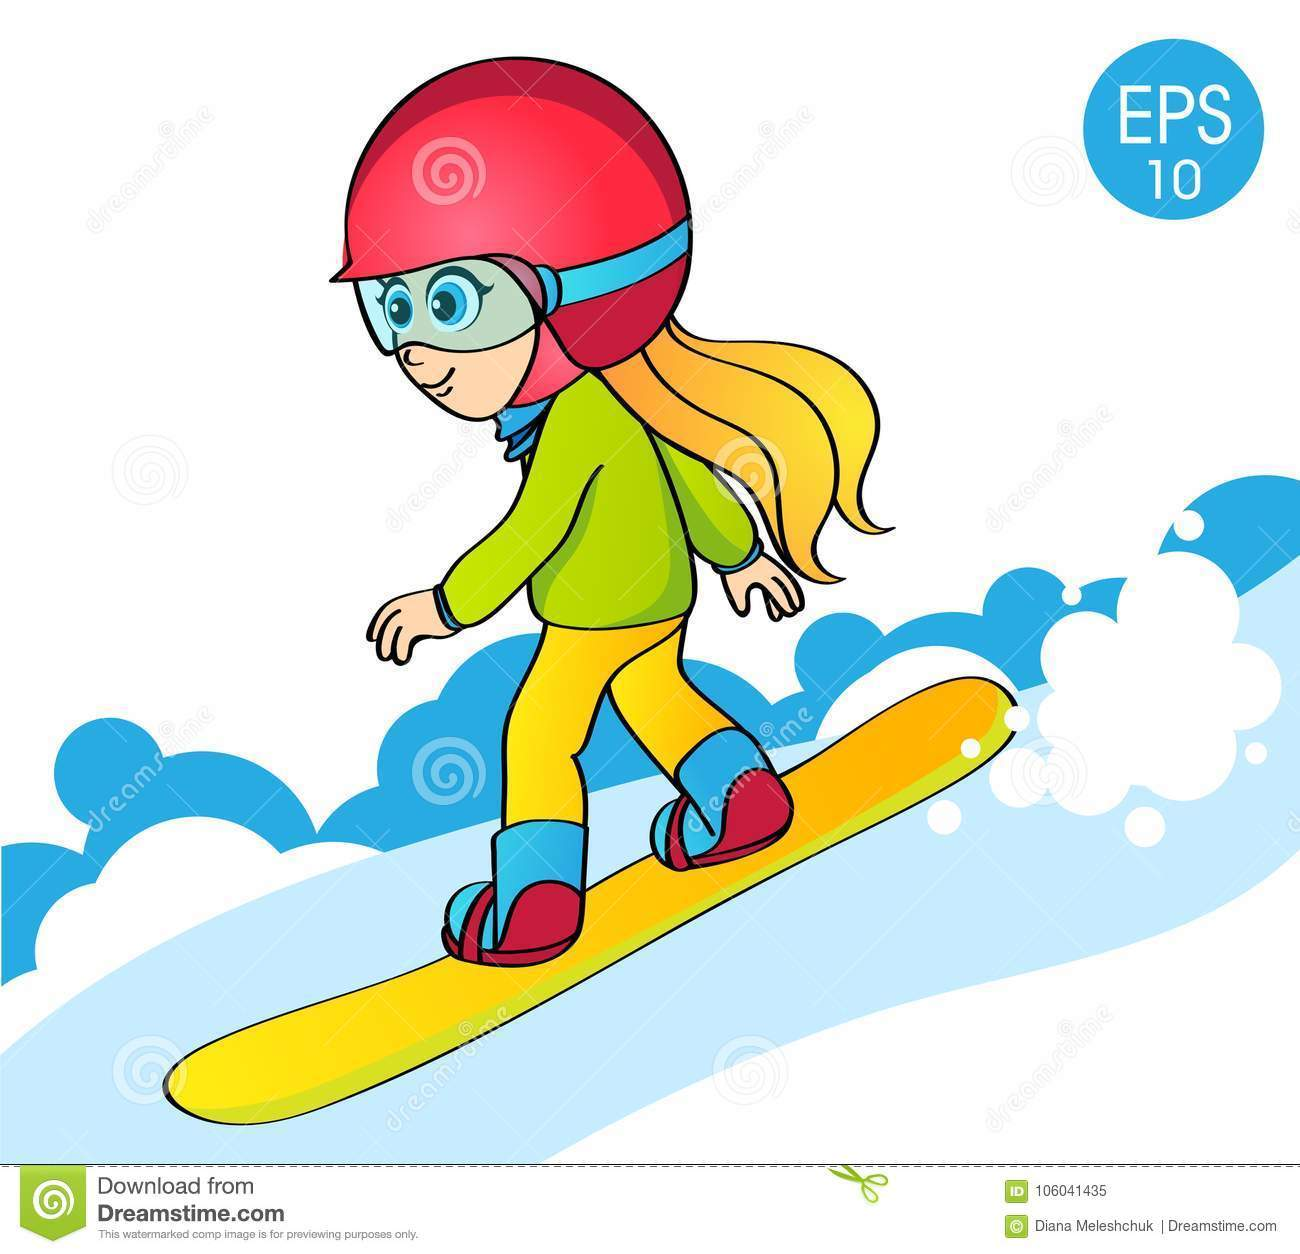 Girl snowboarding clipart 6 » Clipart Portal clip art royalty free stock